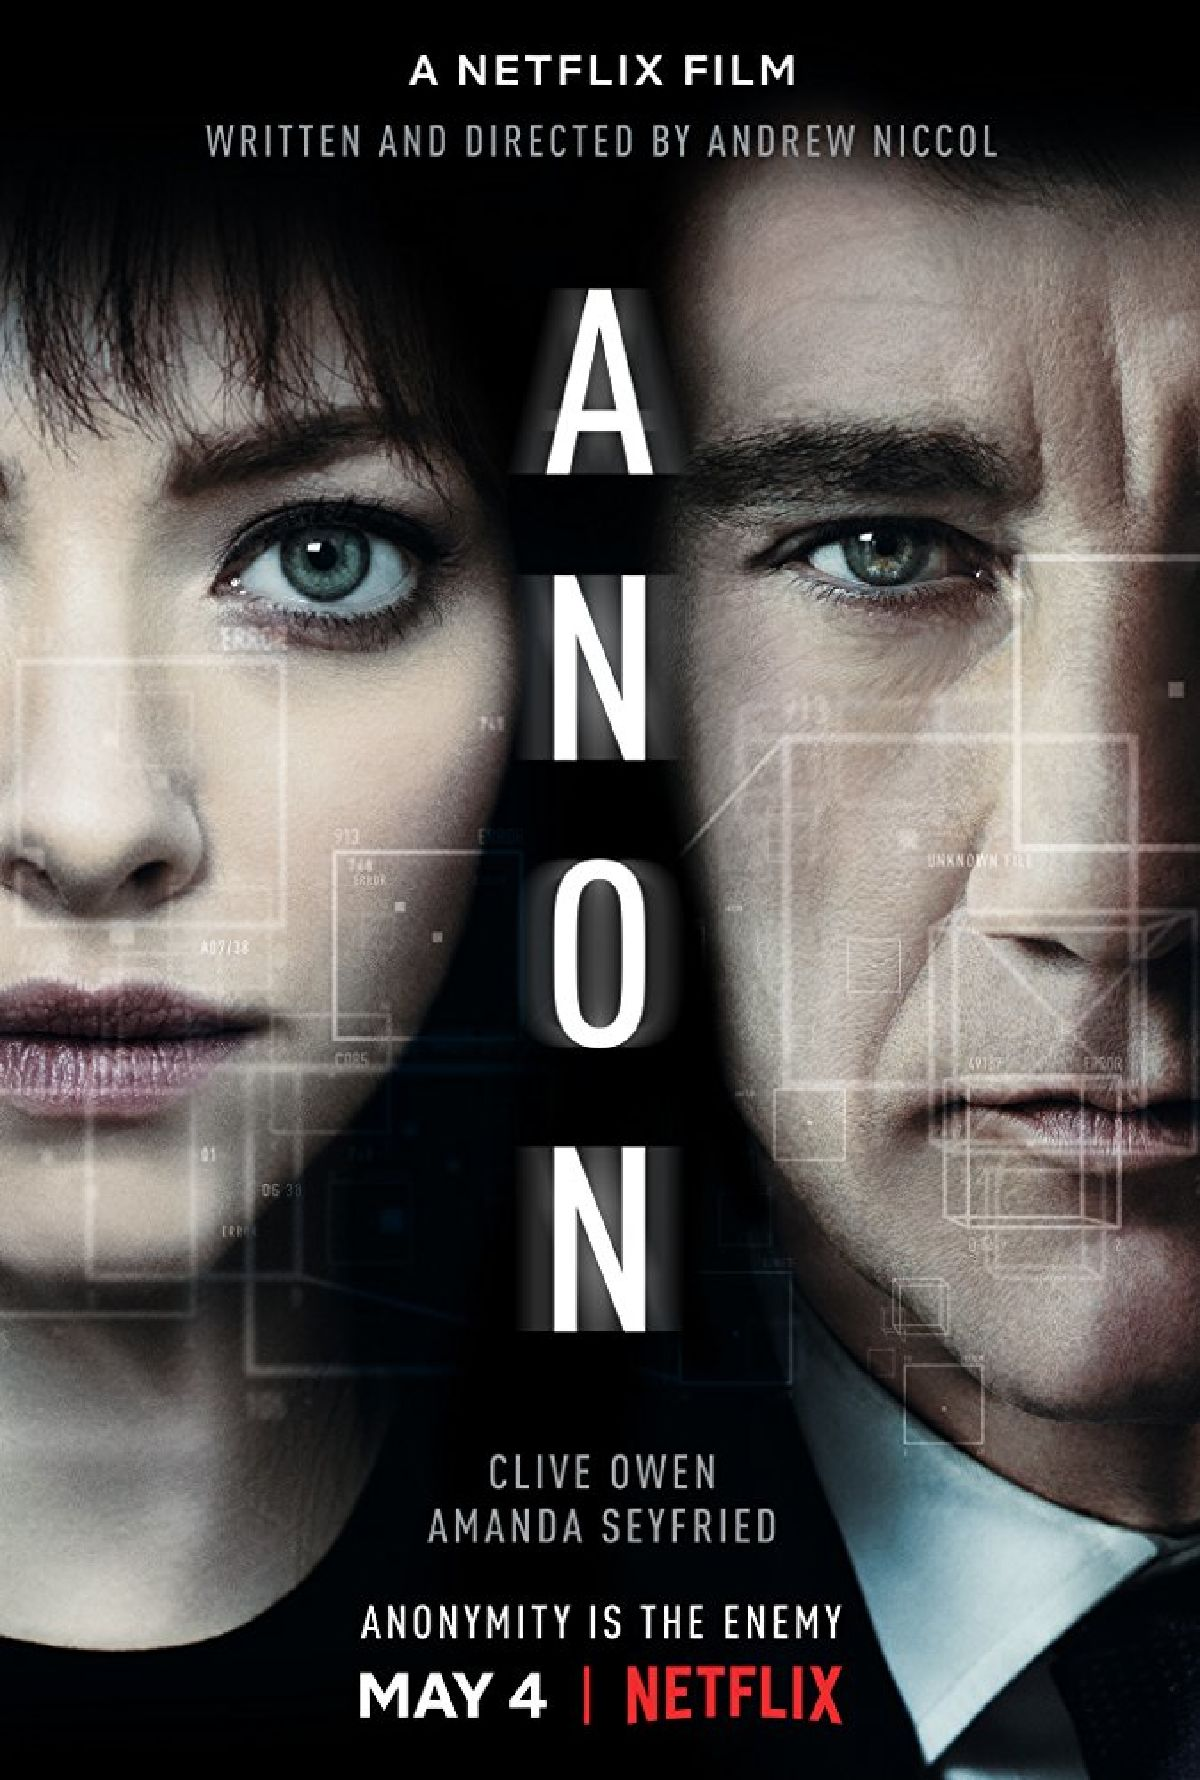 'Anon' movie poster